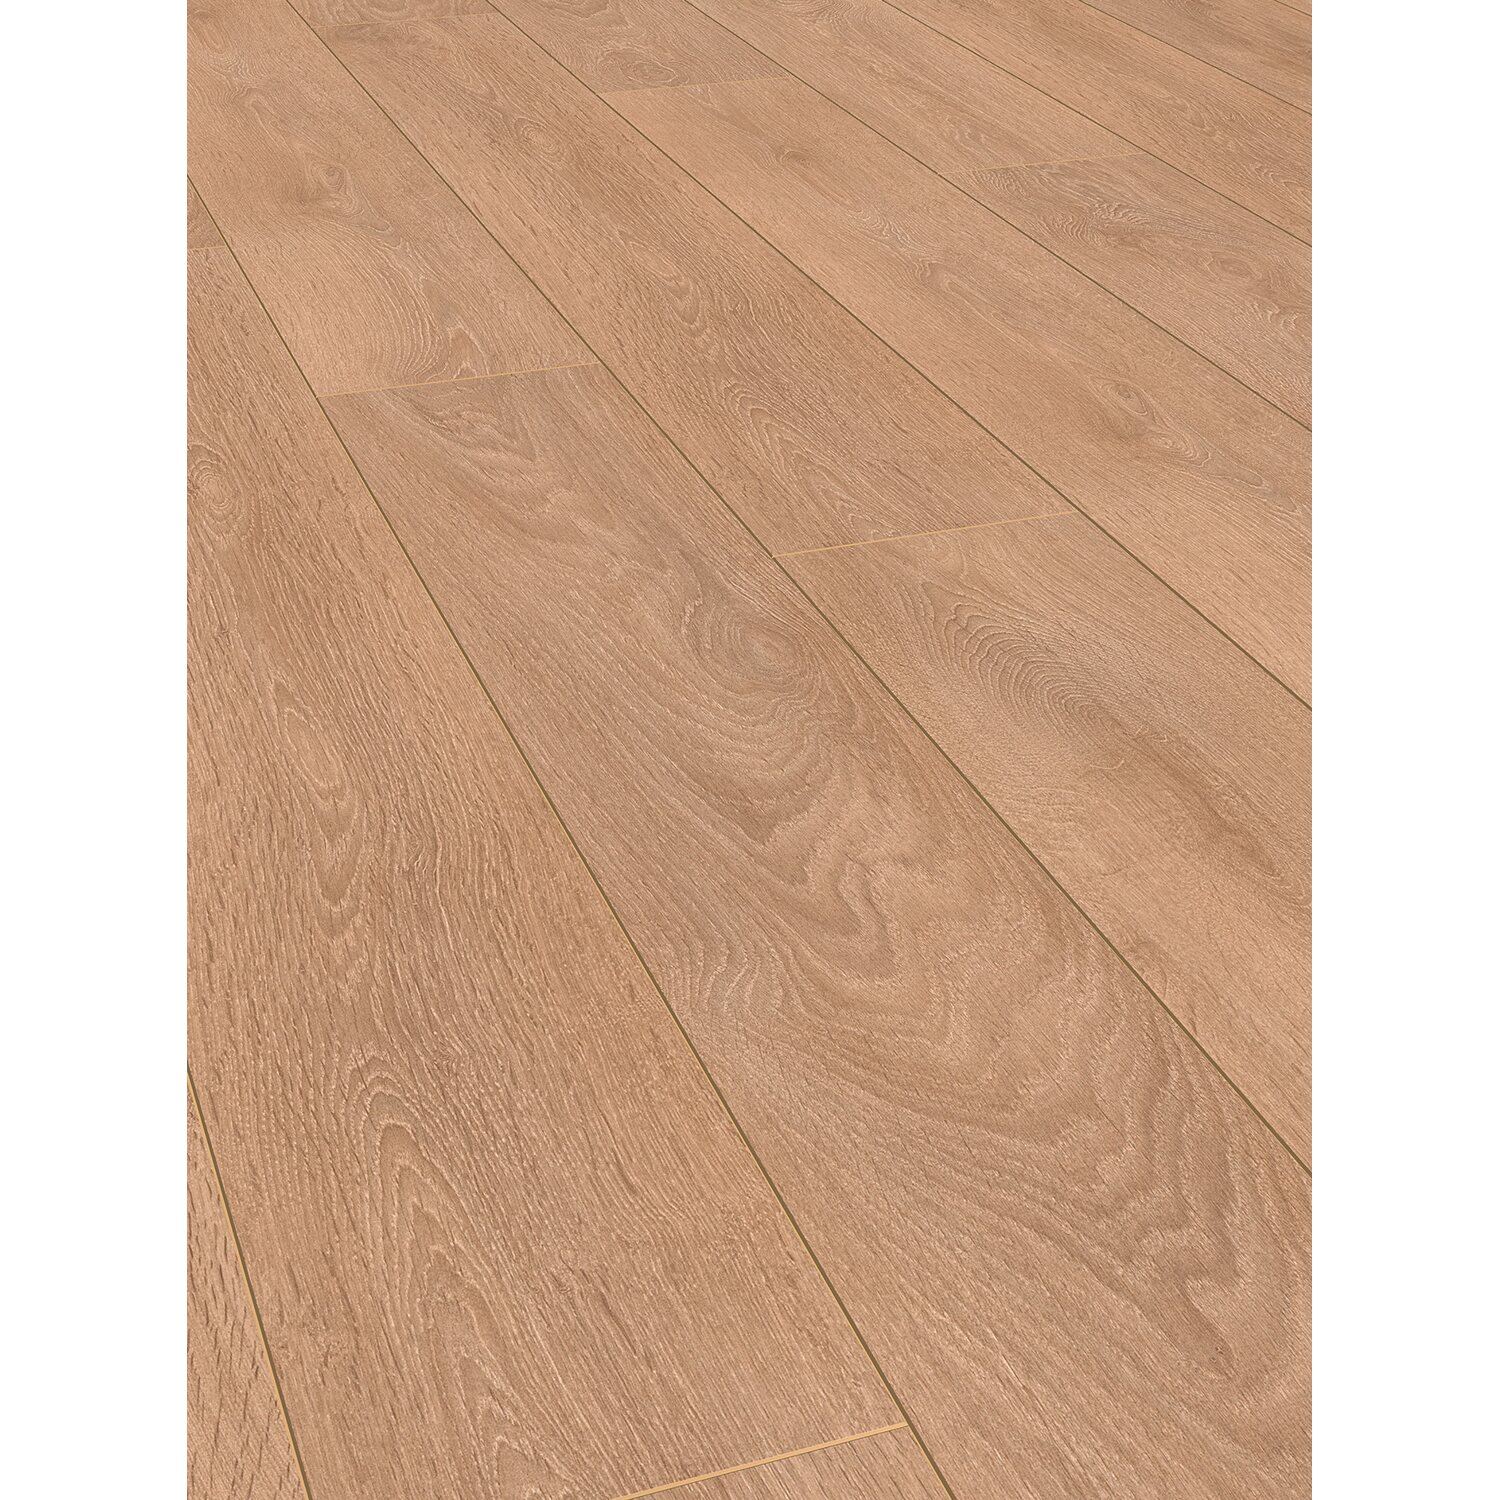 Laminatboden eiche light brushed kaufen bei obi for Raumplaner obi